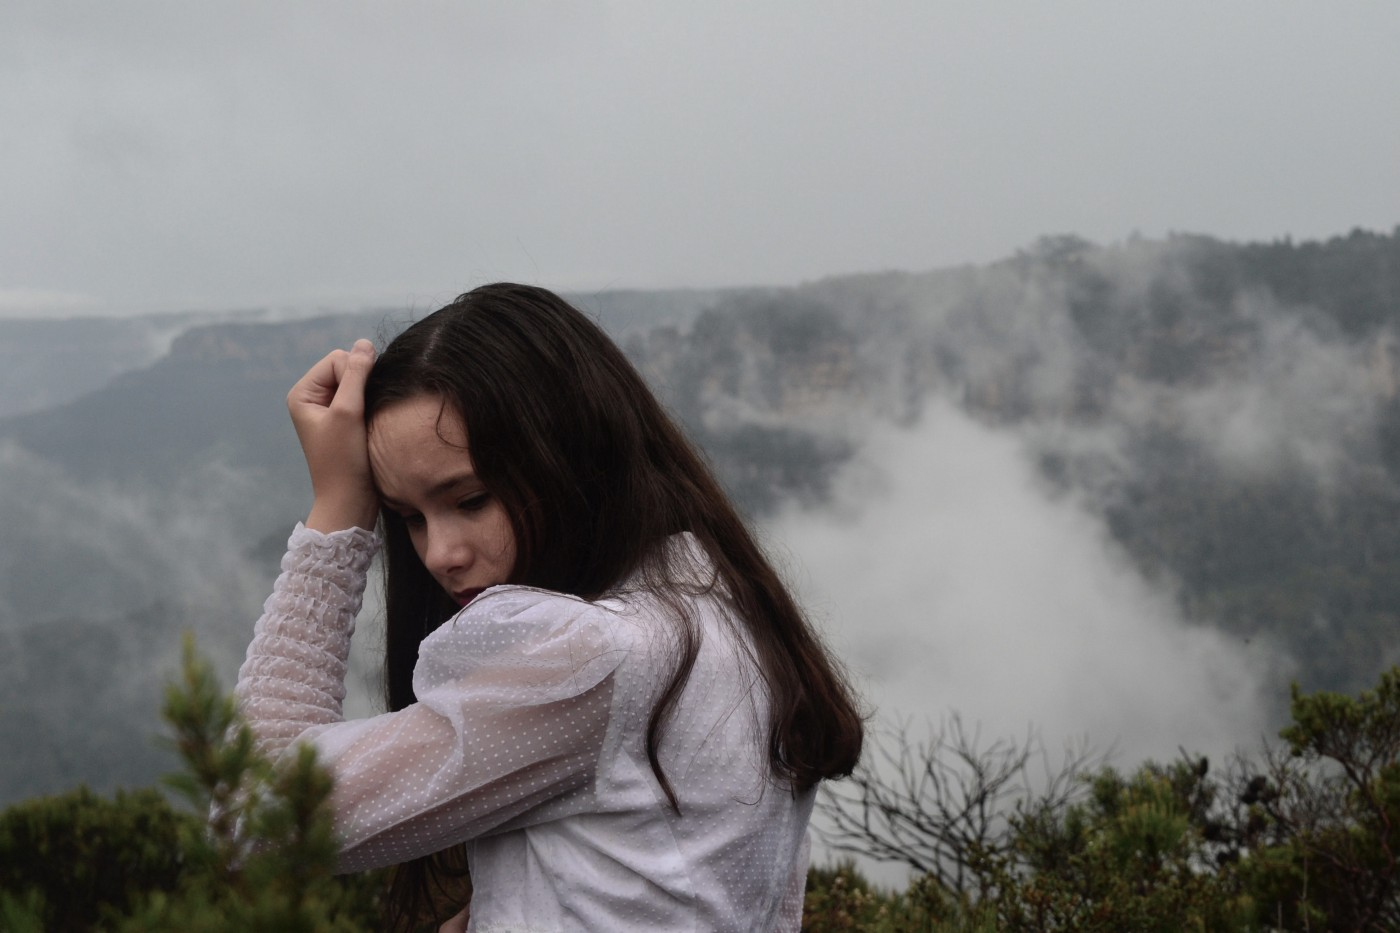 a young woman with long dark brown hair, looking sad with a white shirt, holding up her arm with her head tucked into her arm, with a cloudy background and some bits of dark green foliage in the foreground